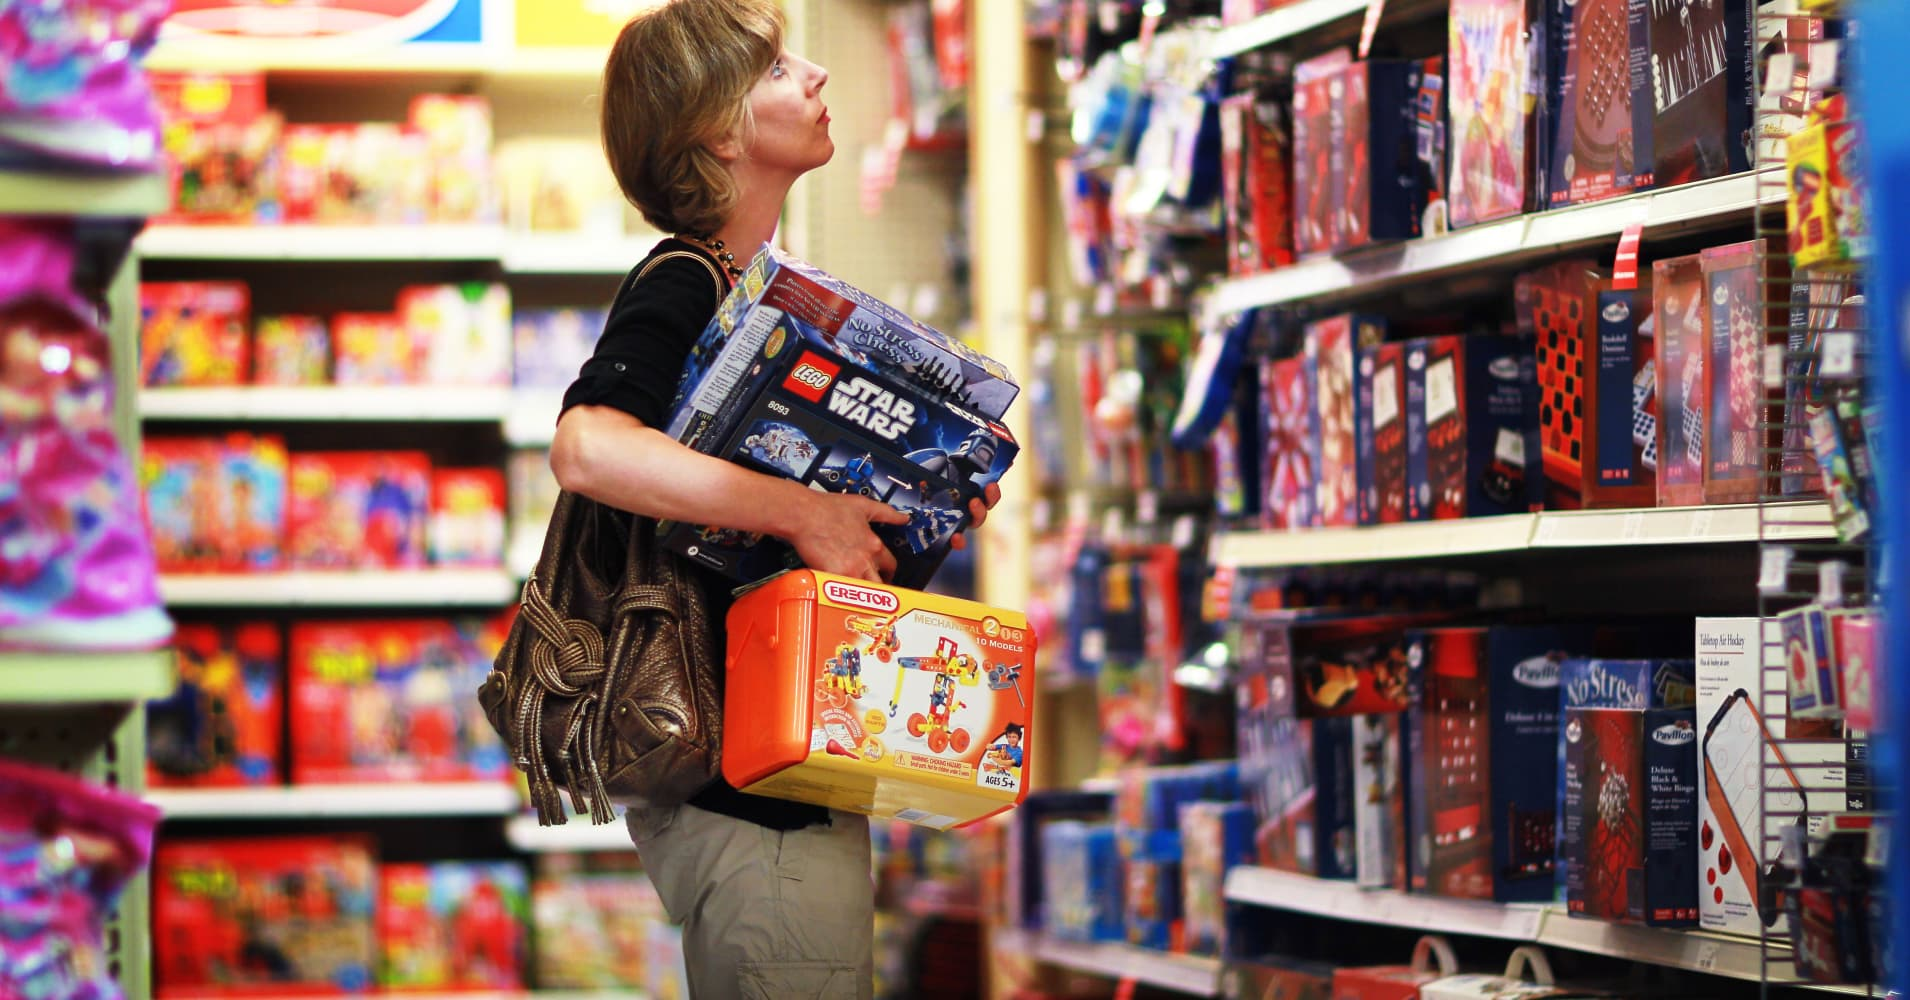 Toy Stores For Boys : Toys r us needs a business model makeover roth